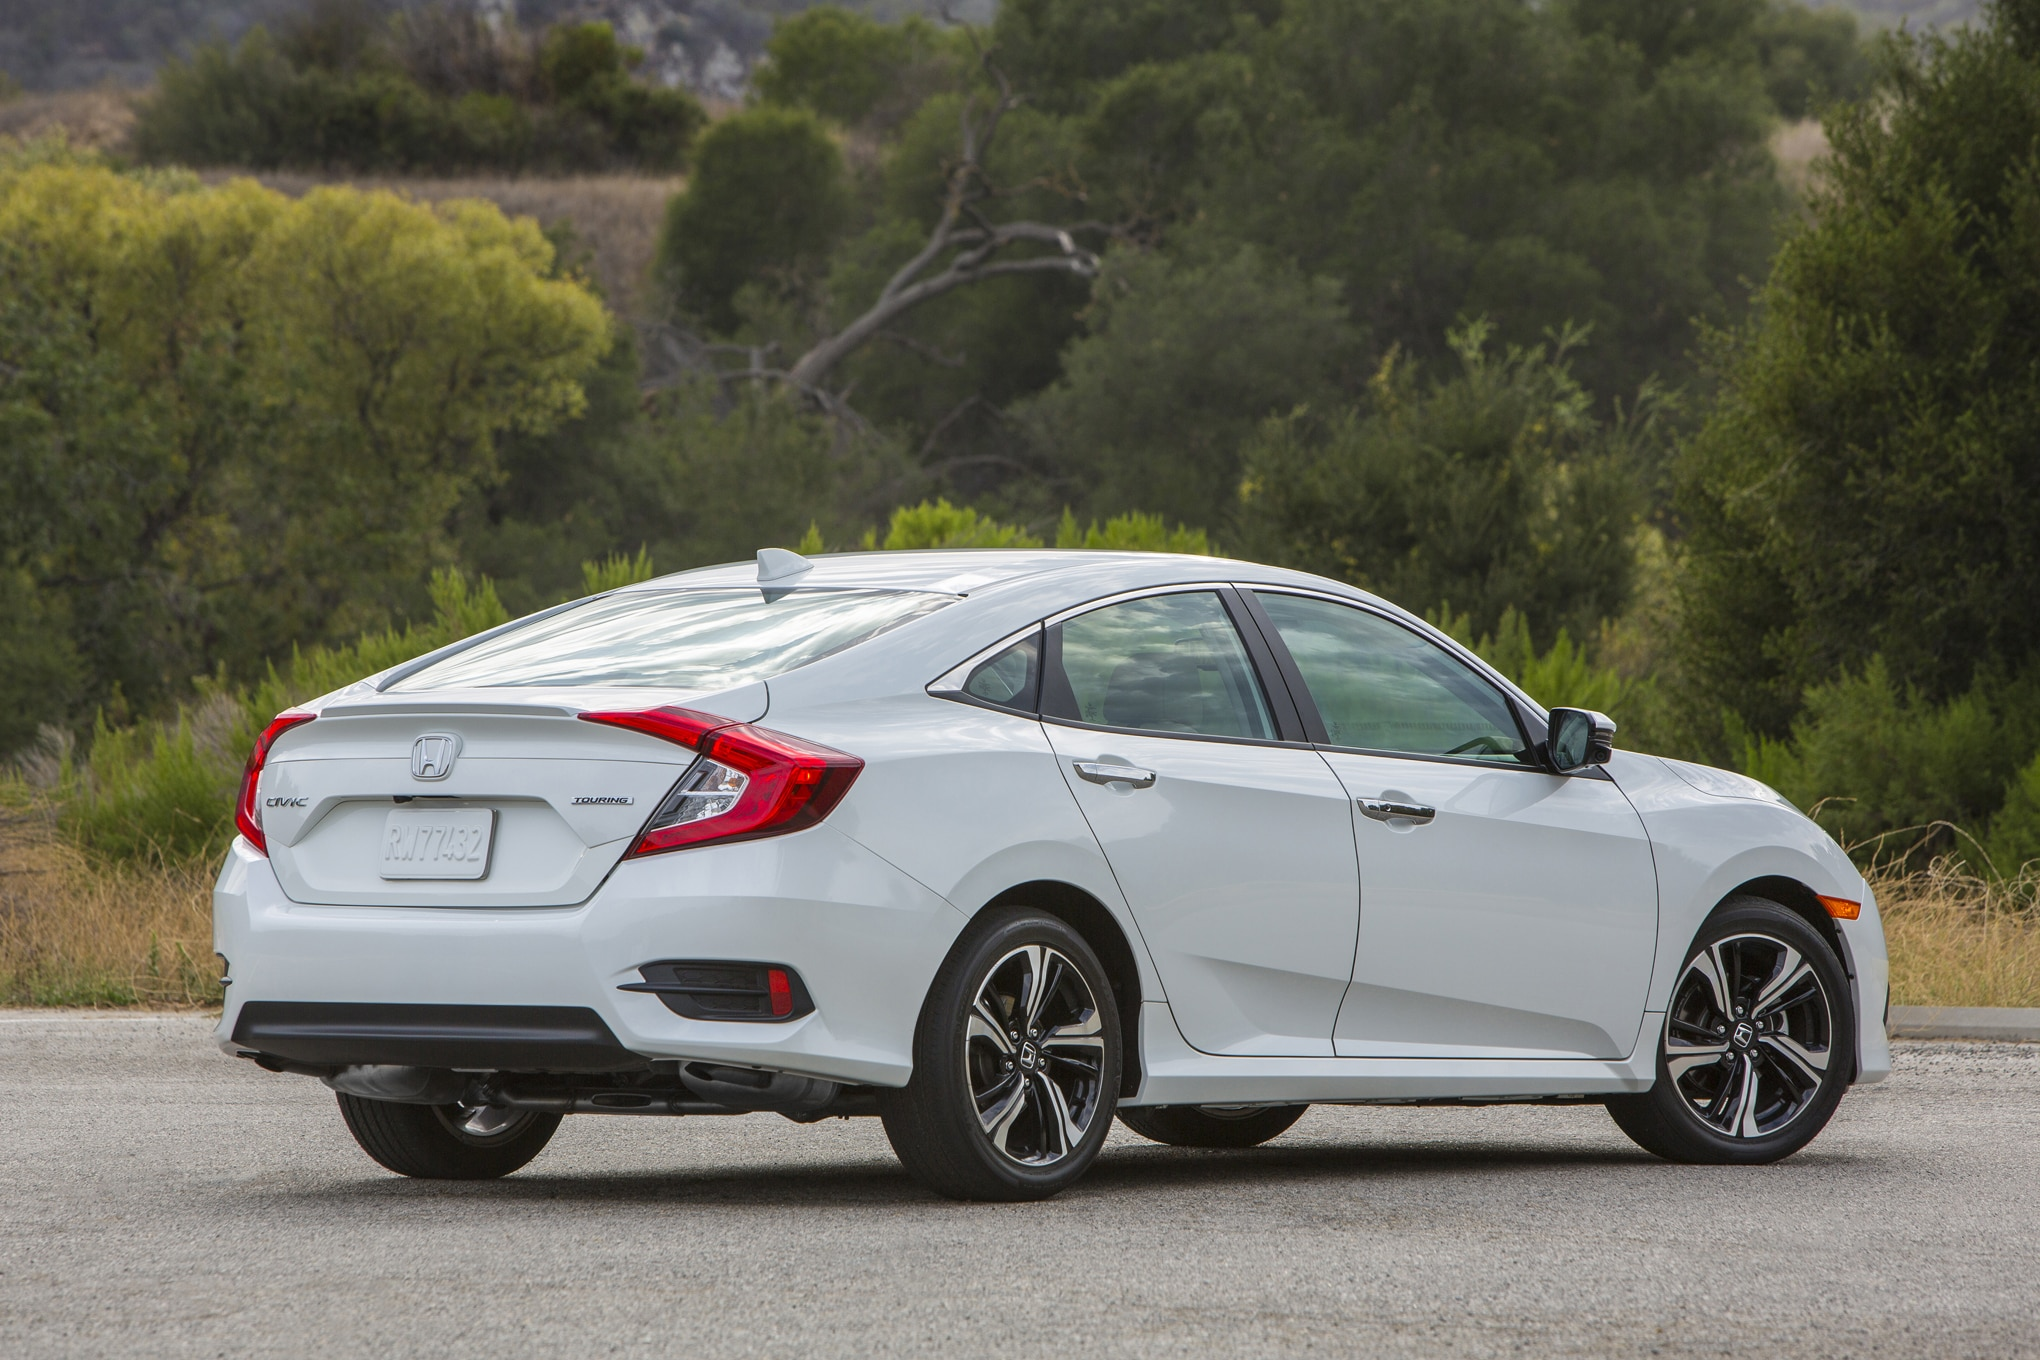 2017 honda civic hatchback spied with rear liftback dual exhausts automobile magazine. Black Bedroom Furniture Sets. Home Design Ideas